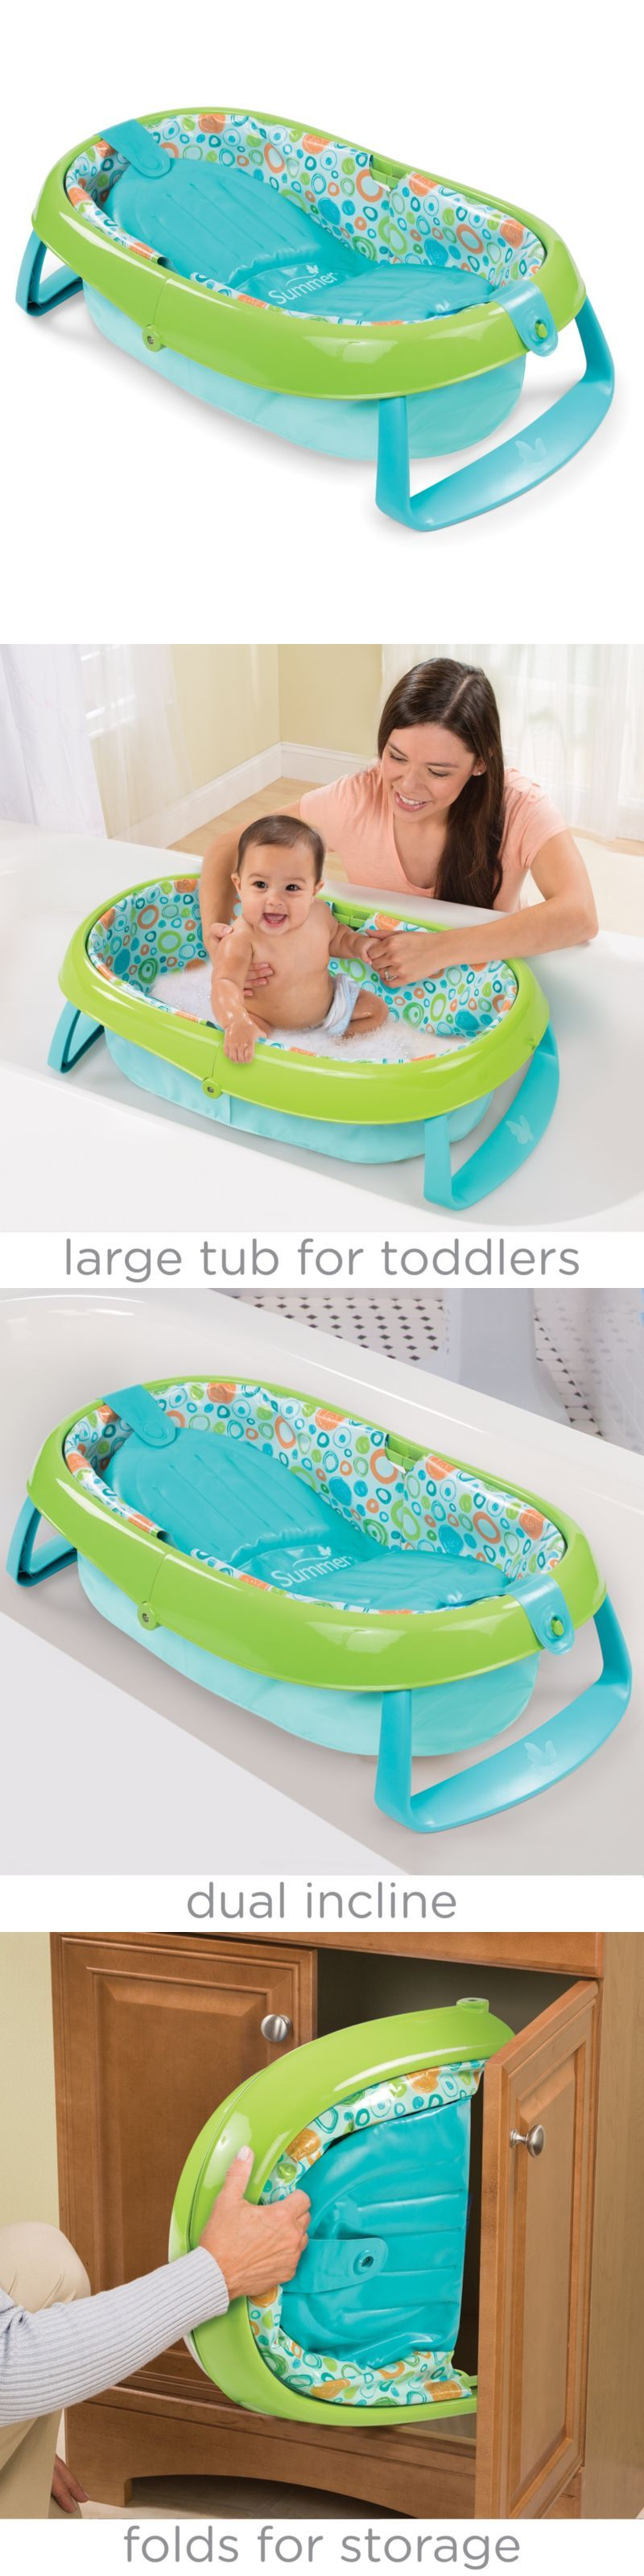 Infant Baby Bath Tub Ring Safety Seat Anti Slip Keter Plastic Chair ...